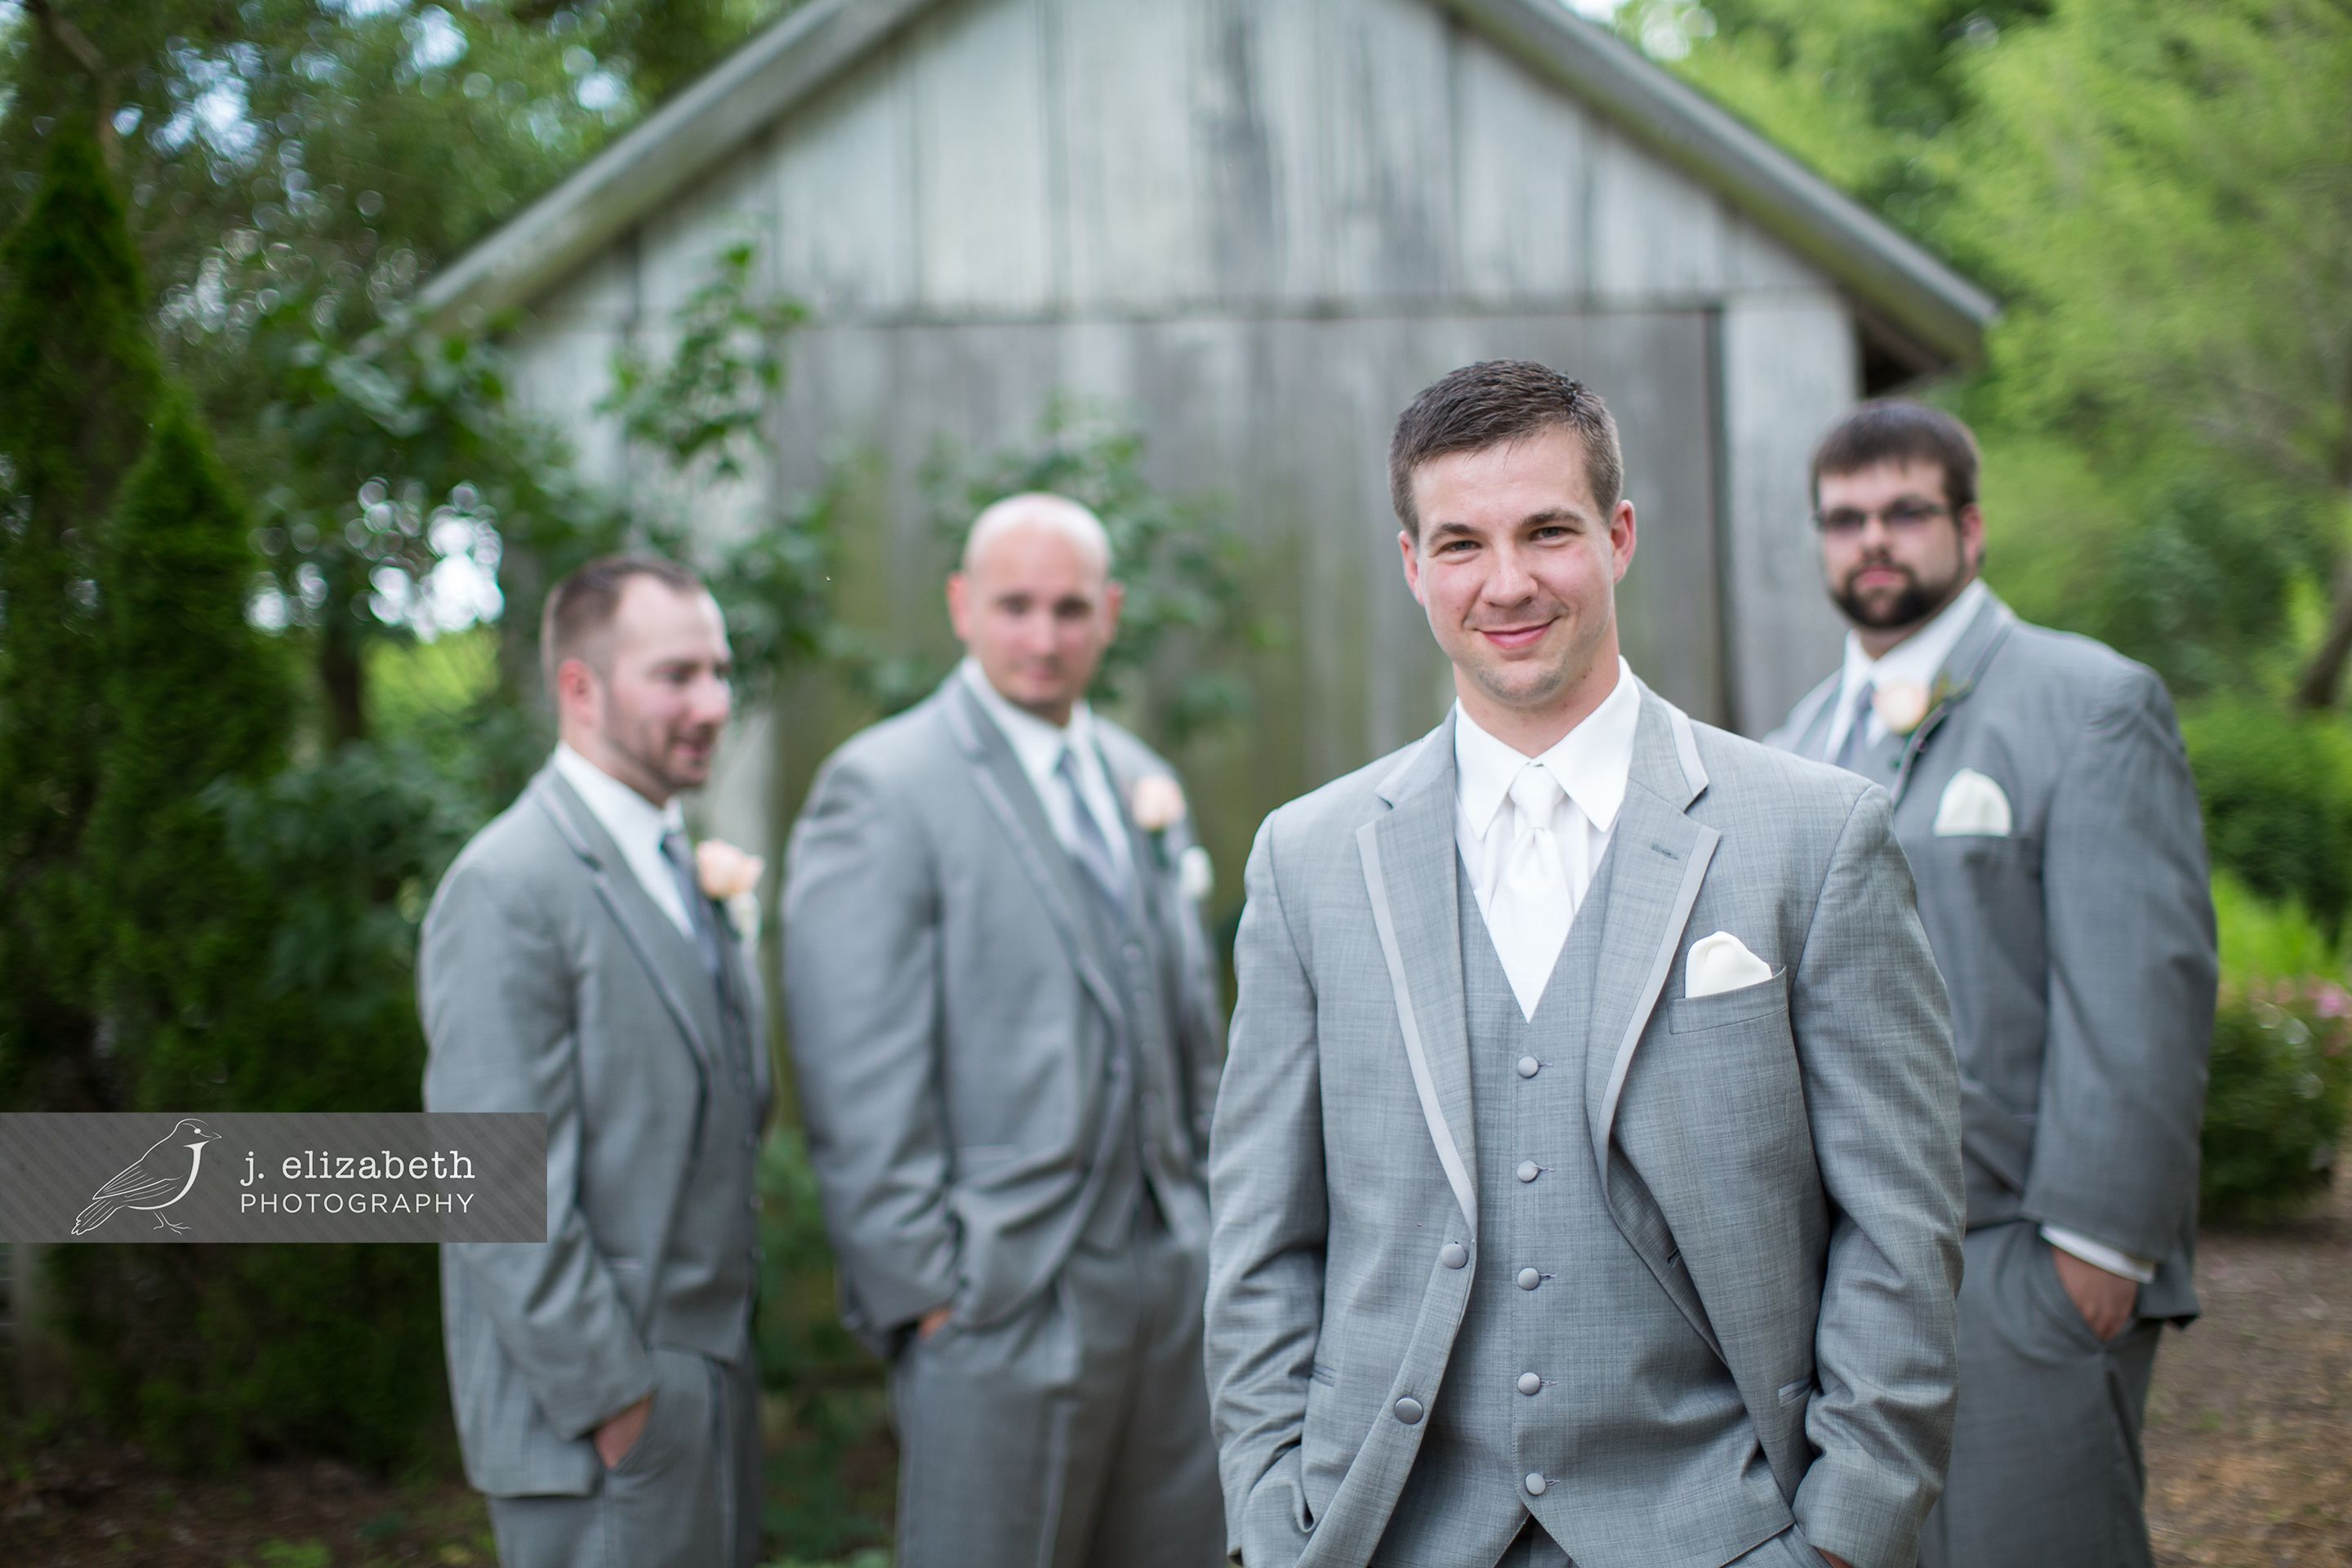 Dorable Vintage Groom Suits Ensign - Colorful Wedding Dress Ideas ...